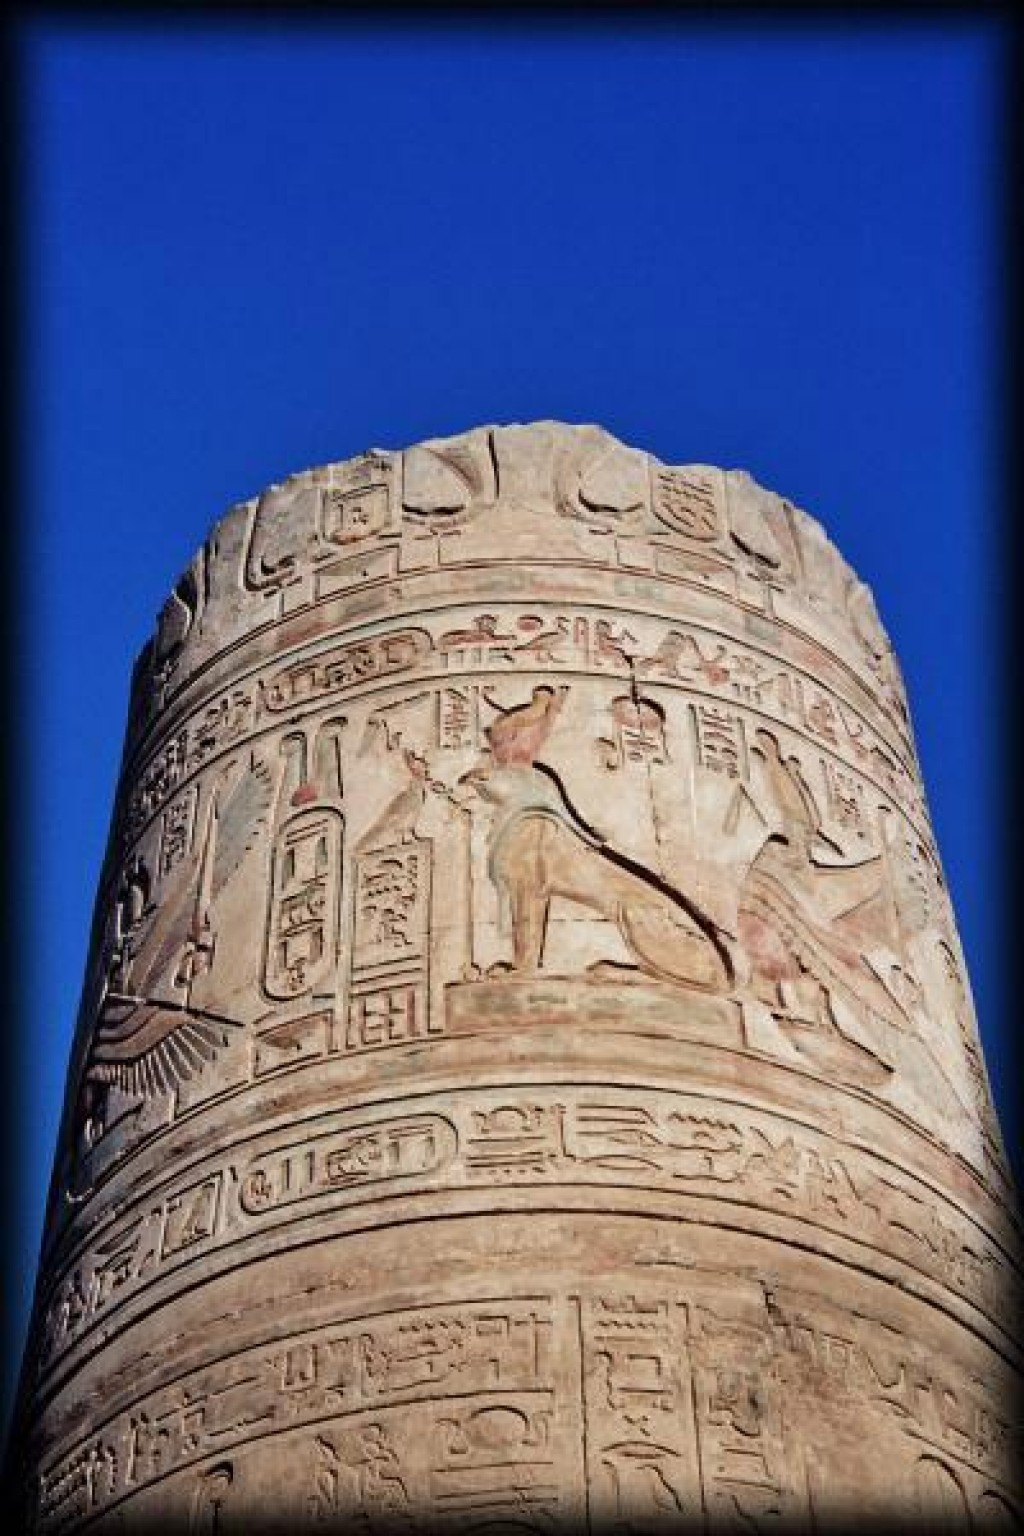 Kom Ombo is located on a bend in the river Nile about 50 km north of Aswan.  The temple is dedicated to the crocodile god Sobek and the falcon god Haroeris (Horus the Elder).